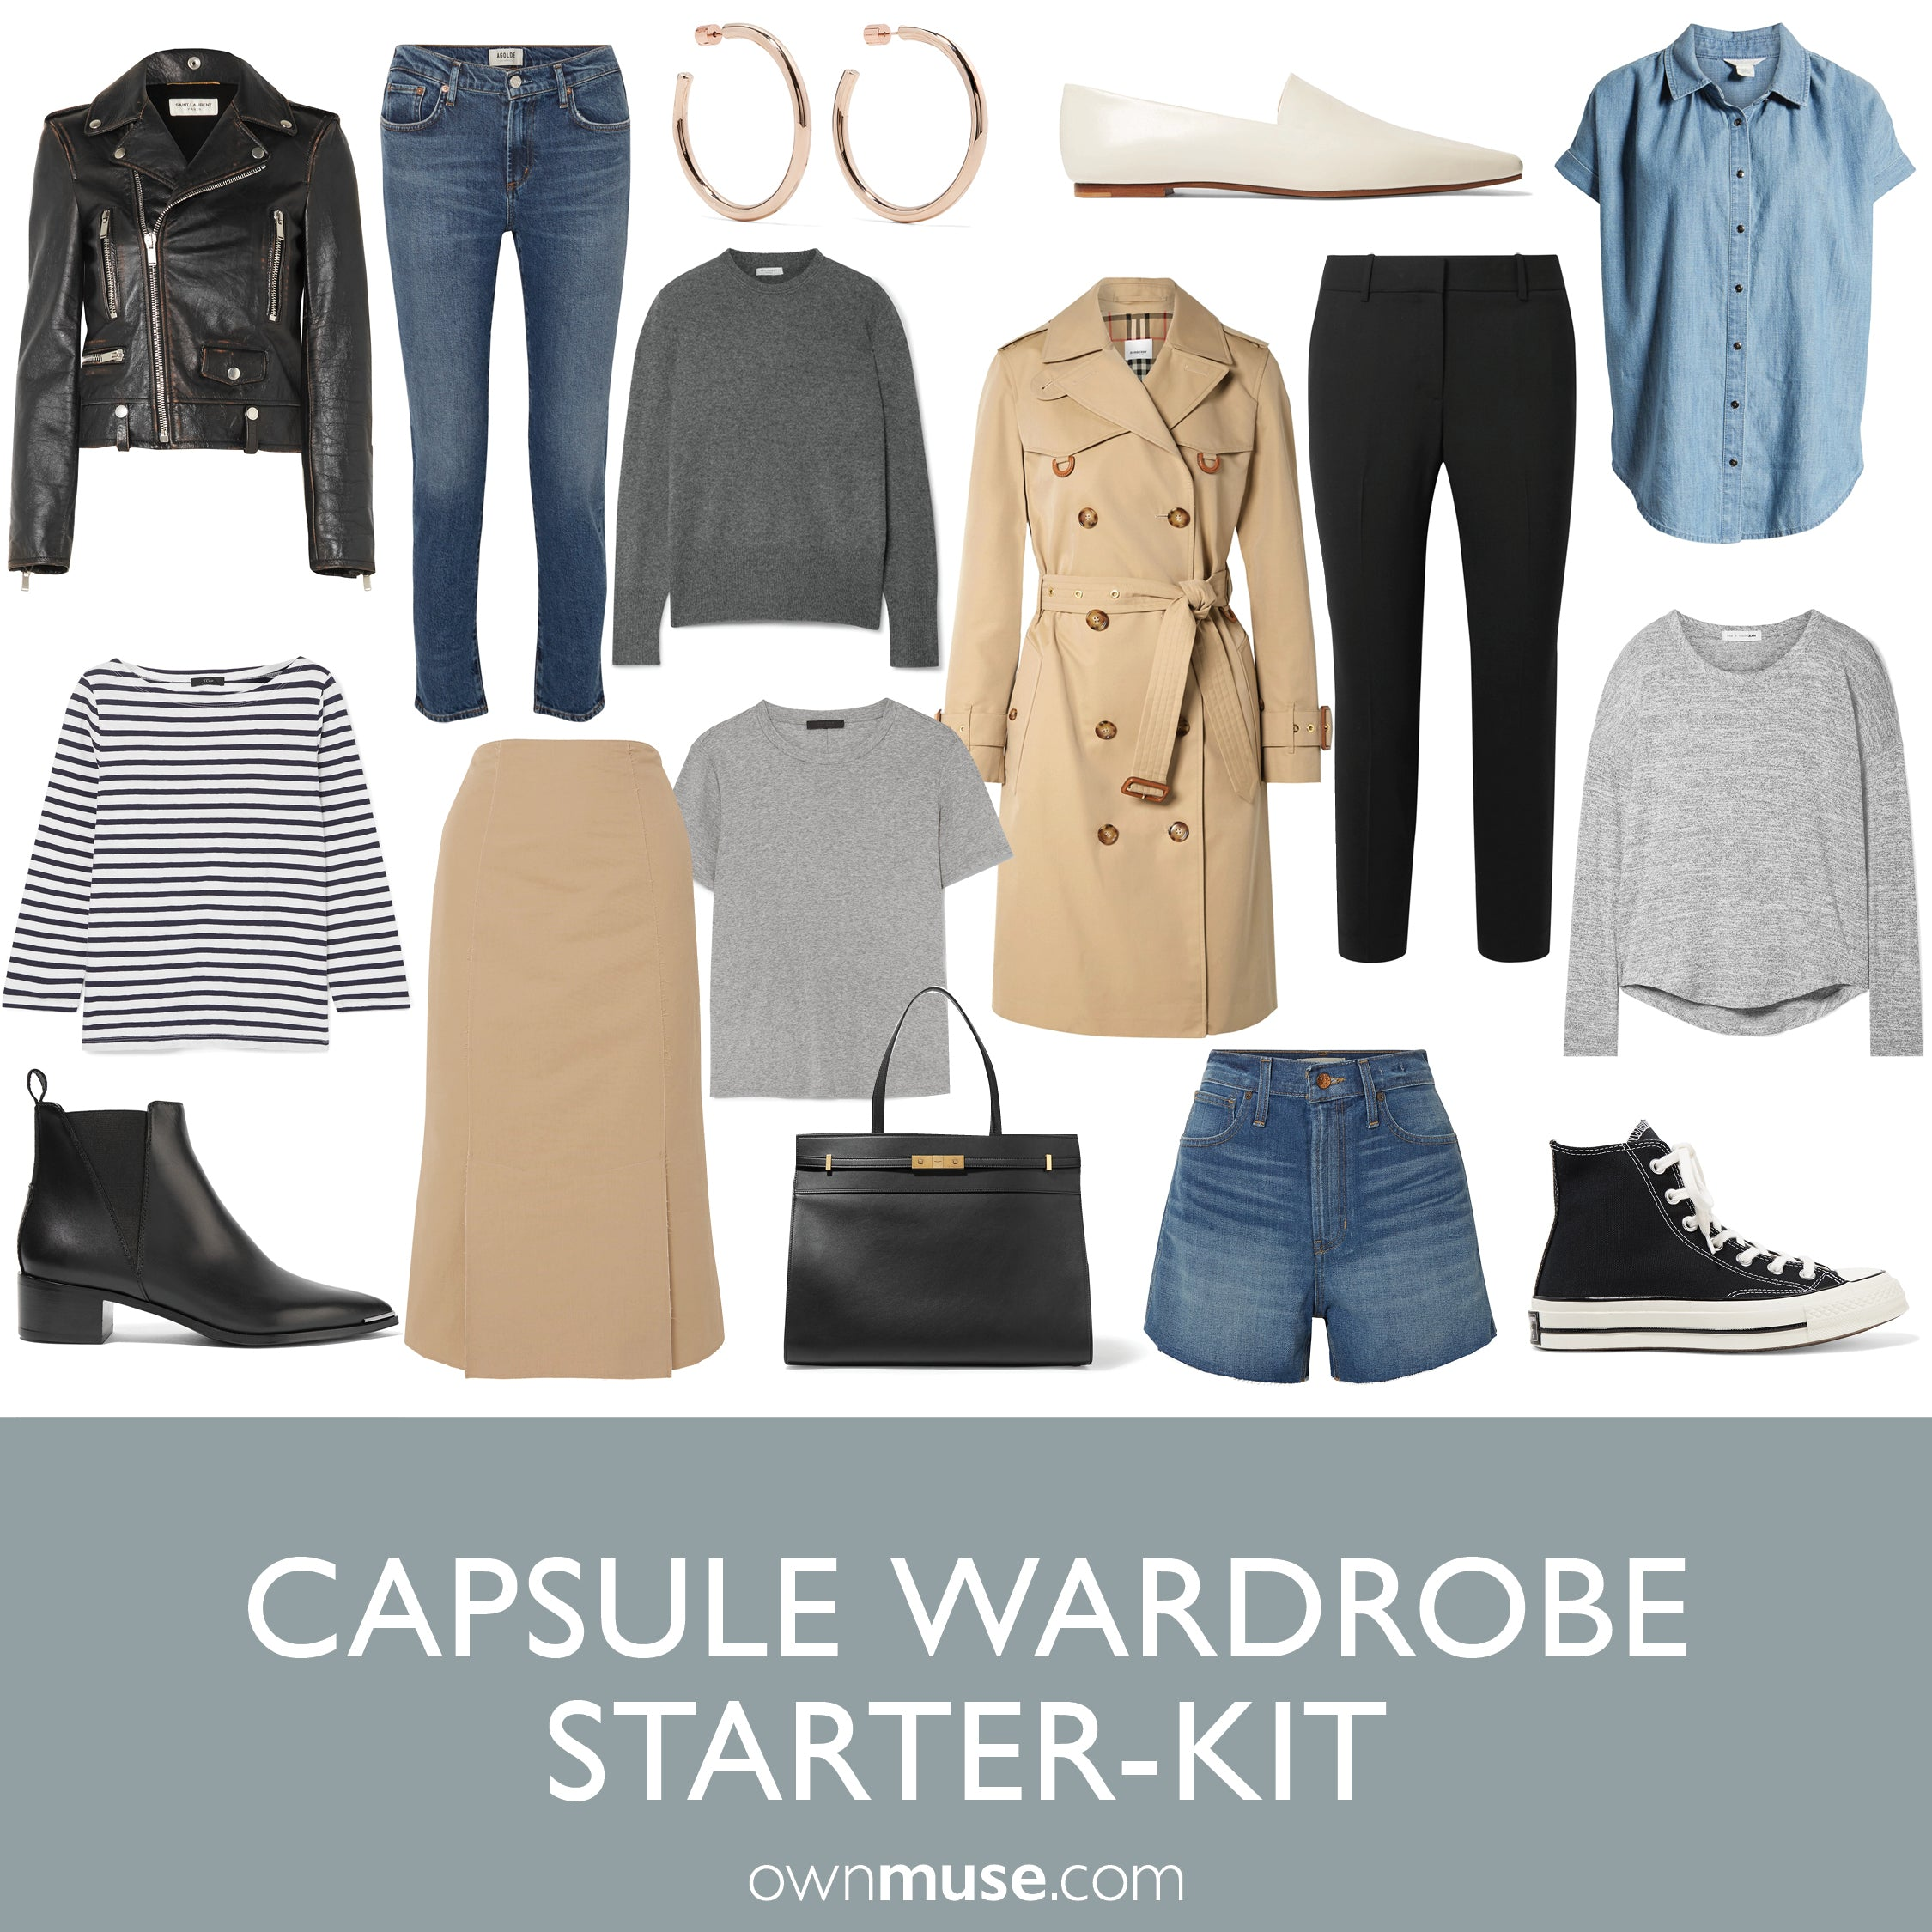 20 Piece Capsule Wardrobe Starter-Kit Guide and Checklist